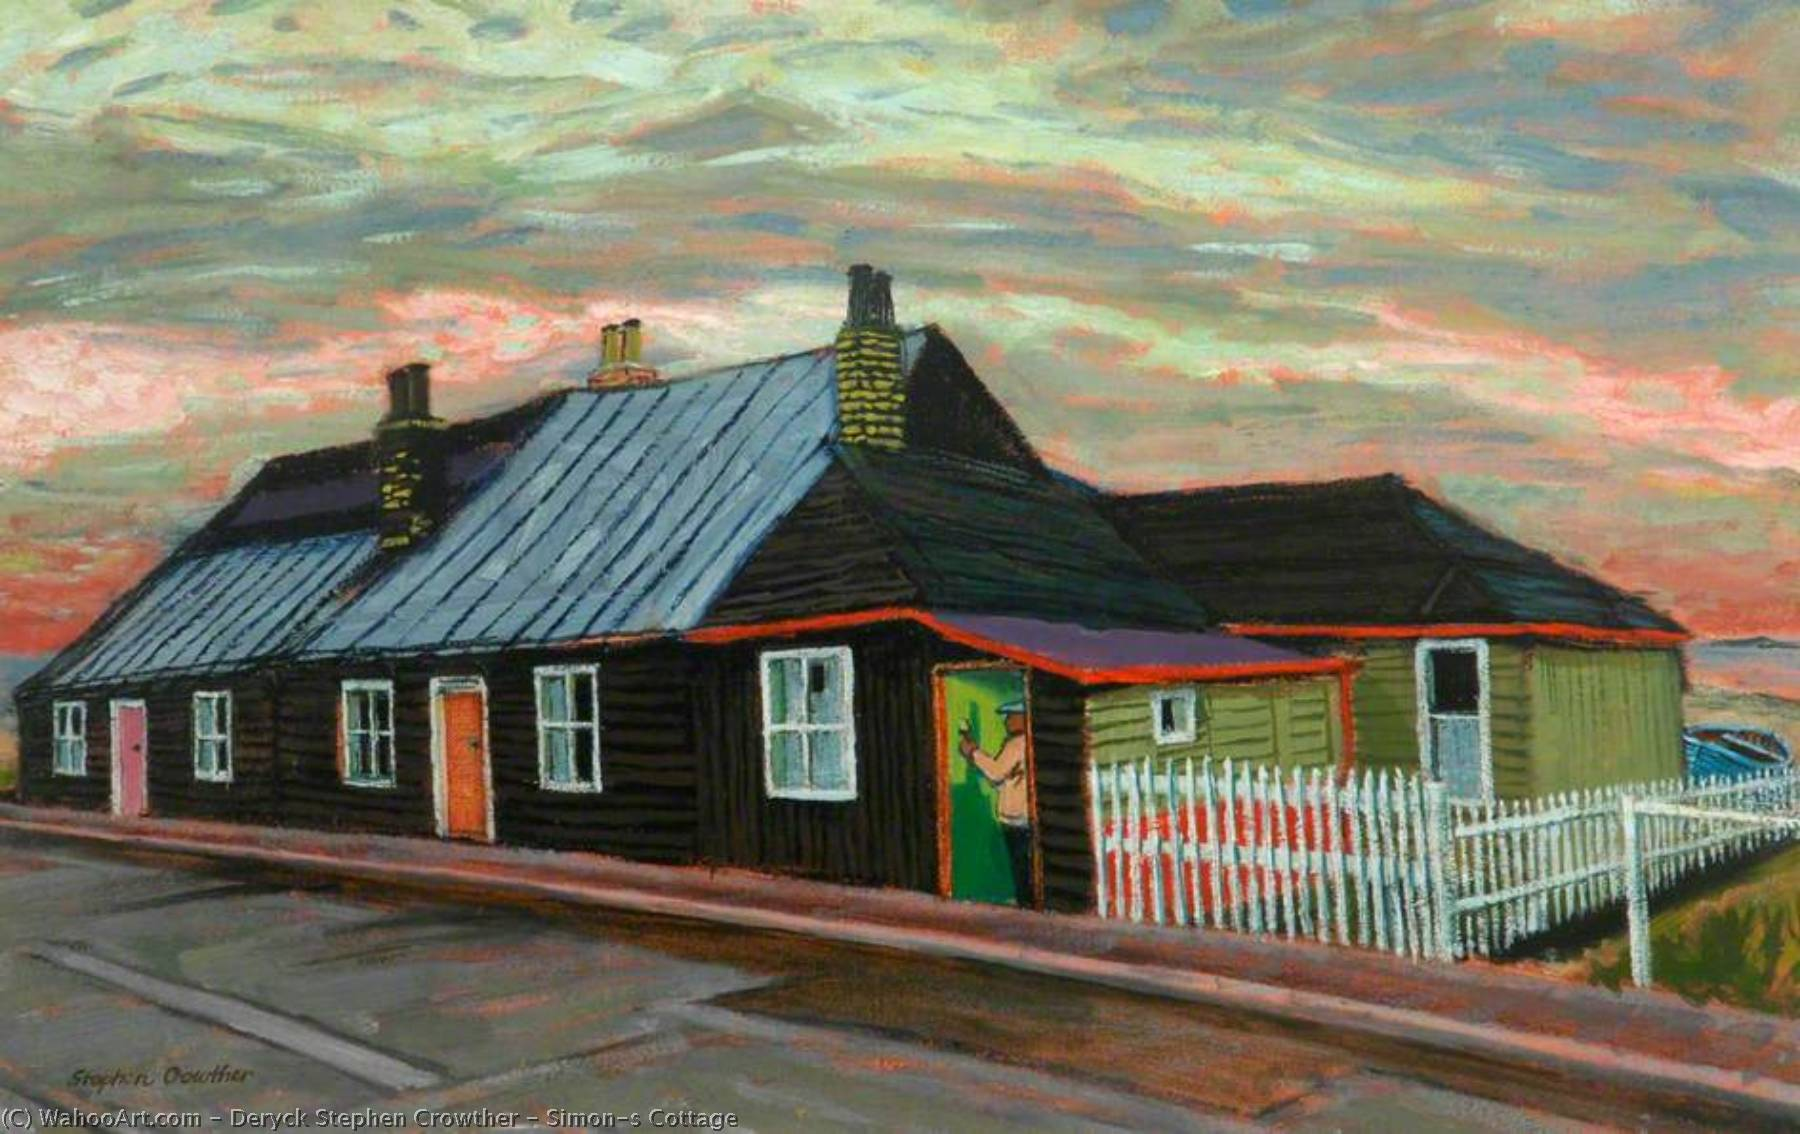 Simon's Cottage, Oil On Canvas by Deryck Stephen Crowther